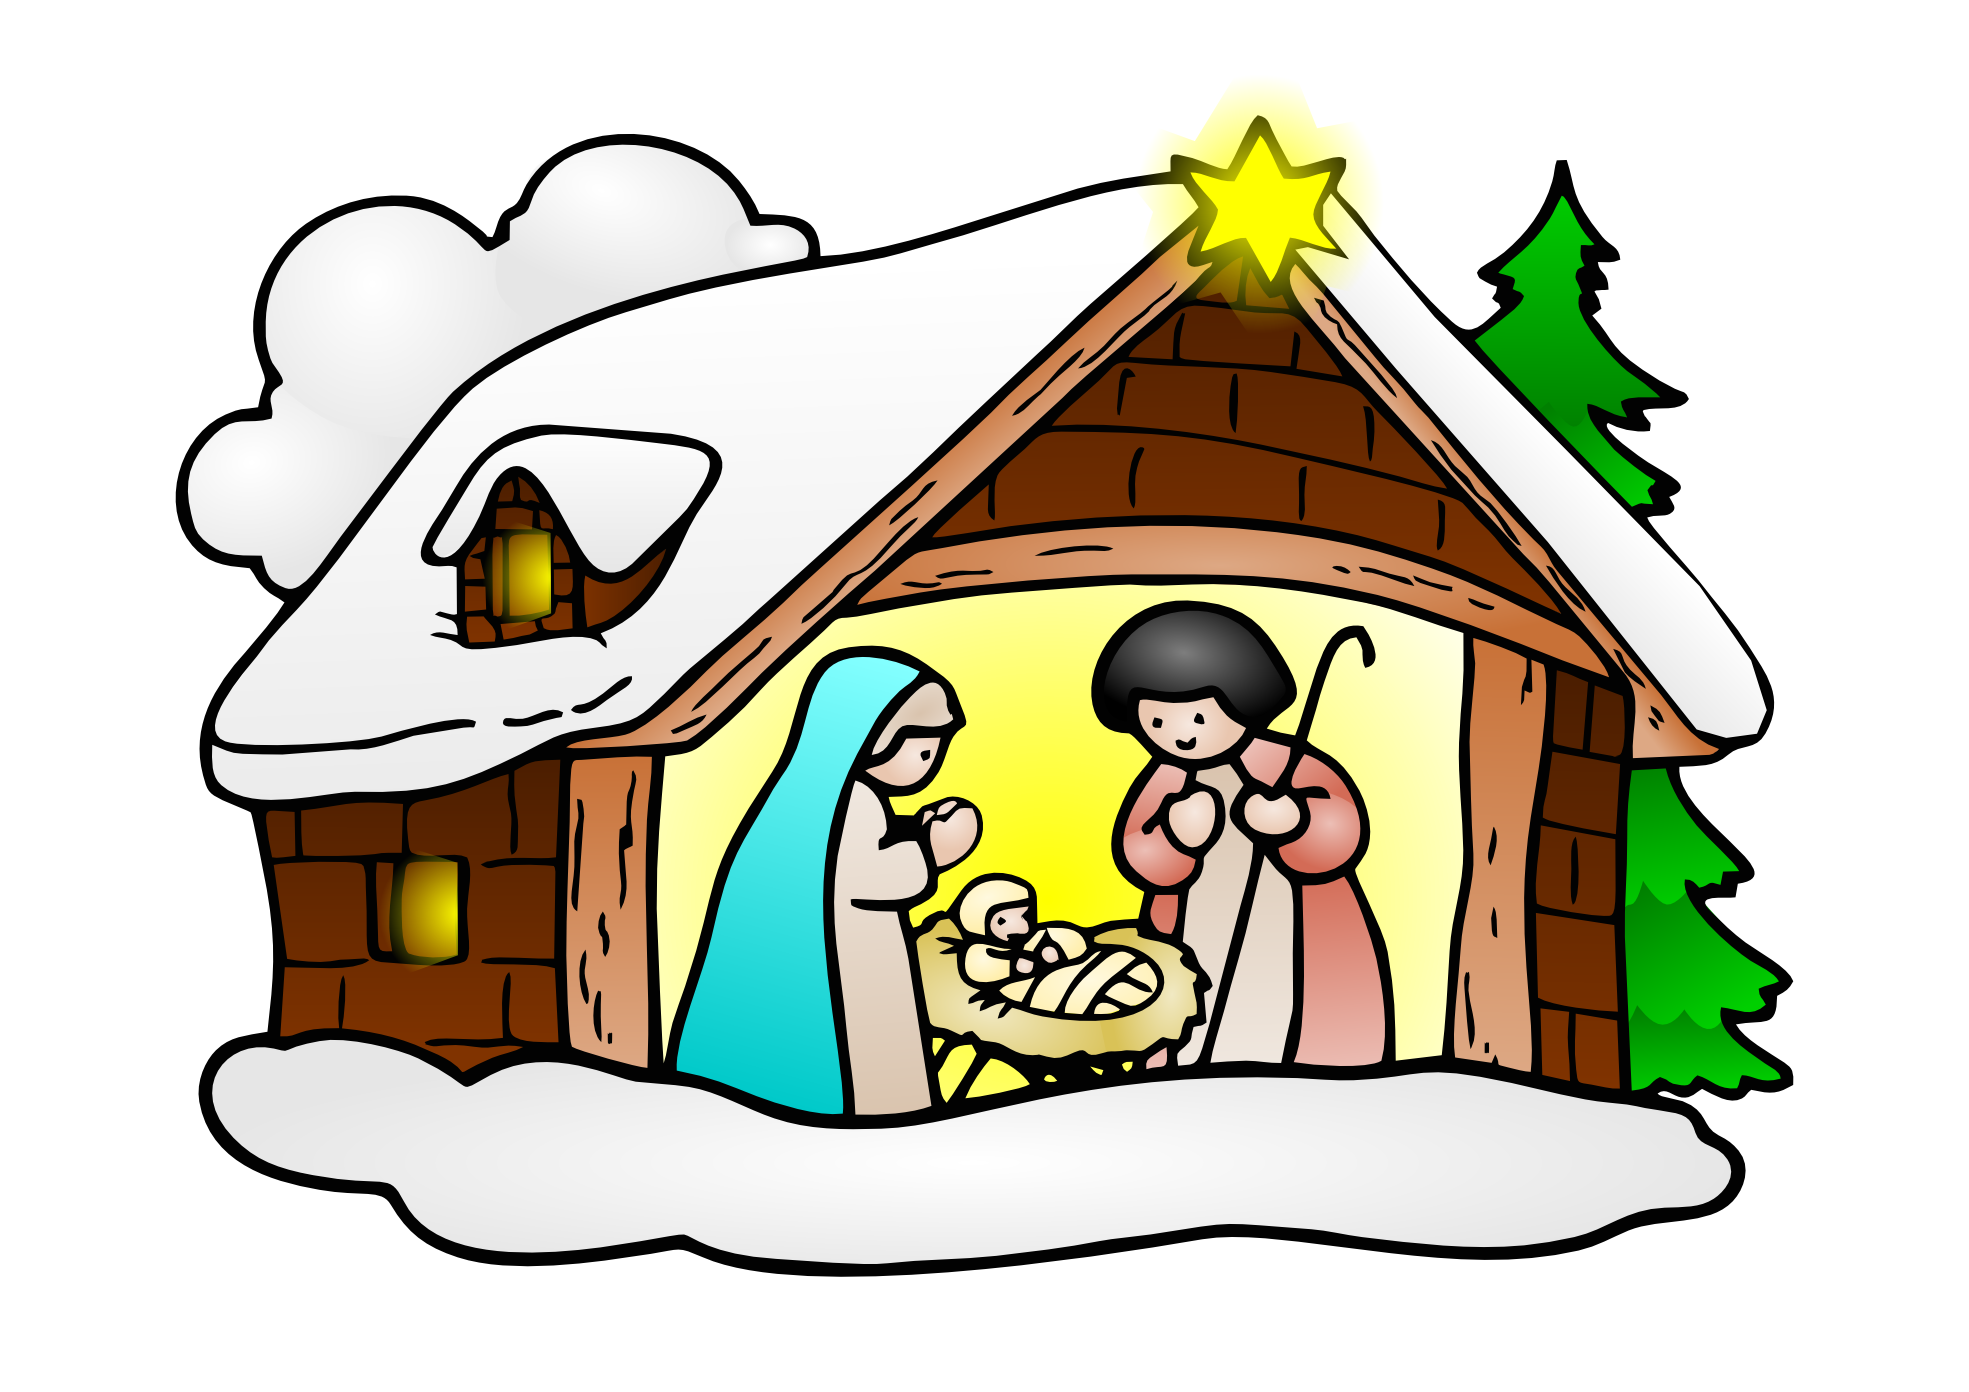 Airplane christmas jesus clipart graphic royalty free stock Free Christmas Nativity Clipart, Download Free Clip Art, Free Clip ... graphic royalty free stock